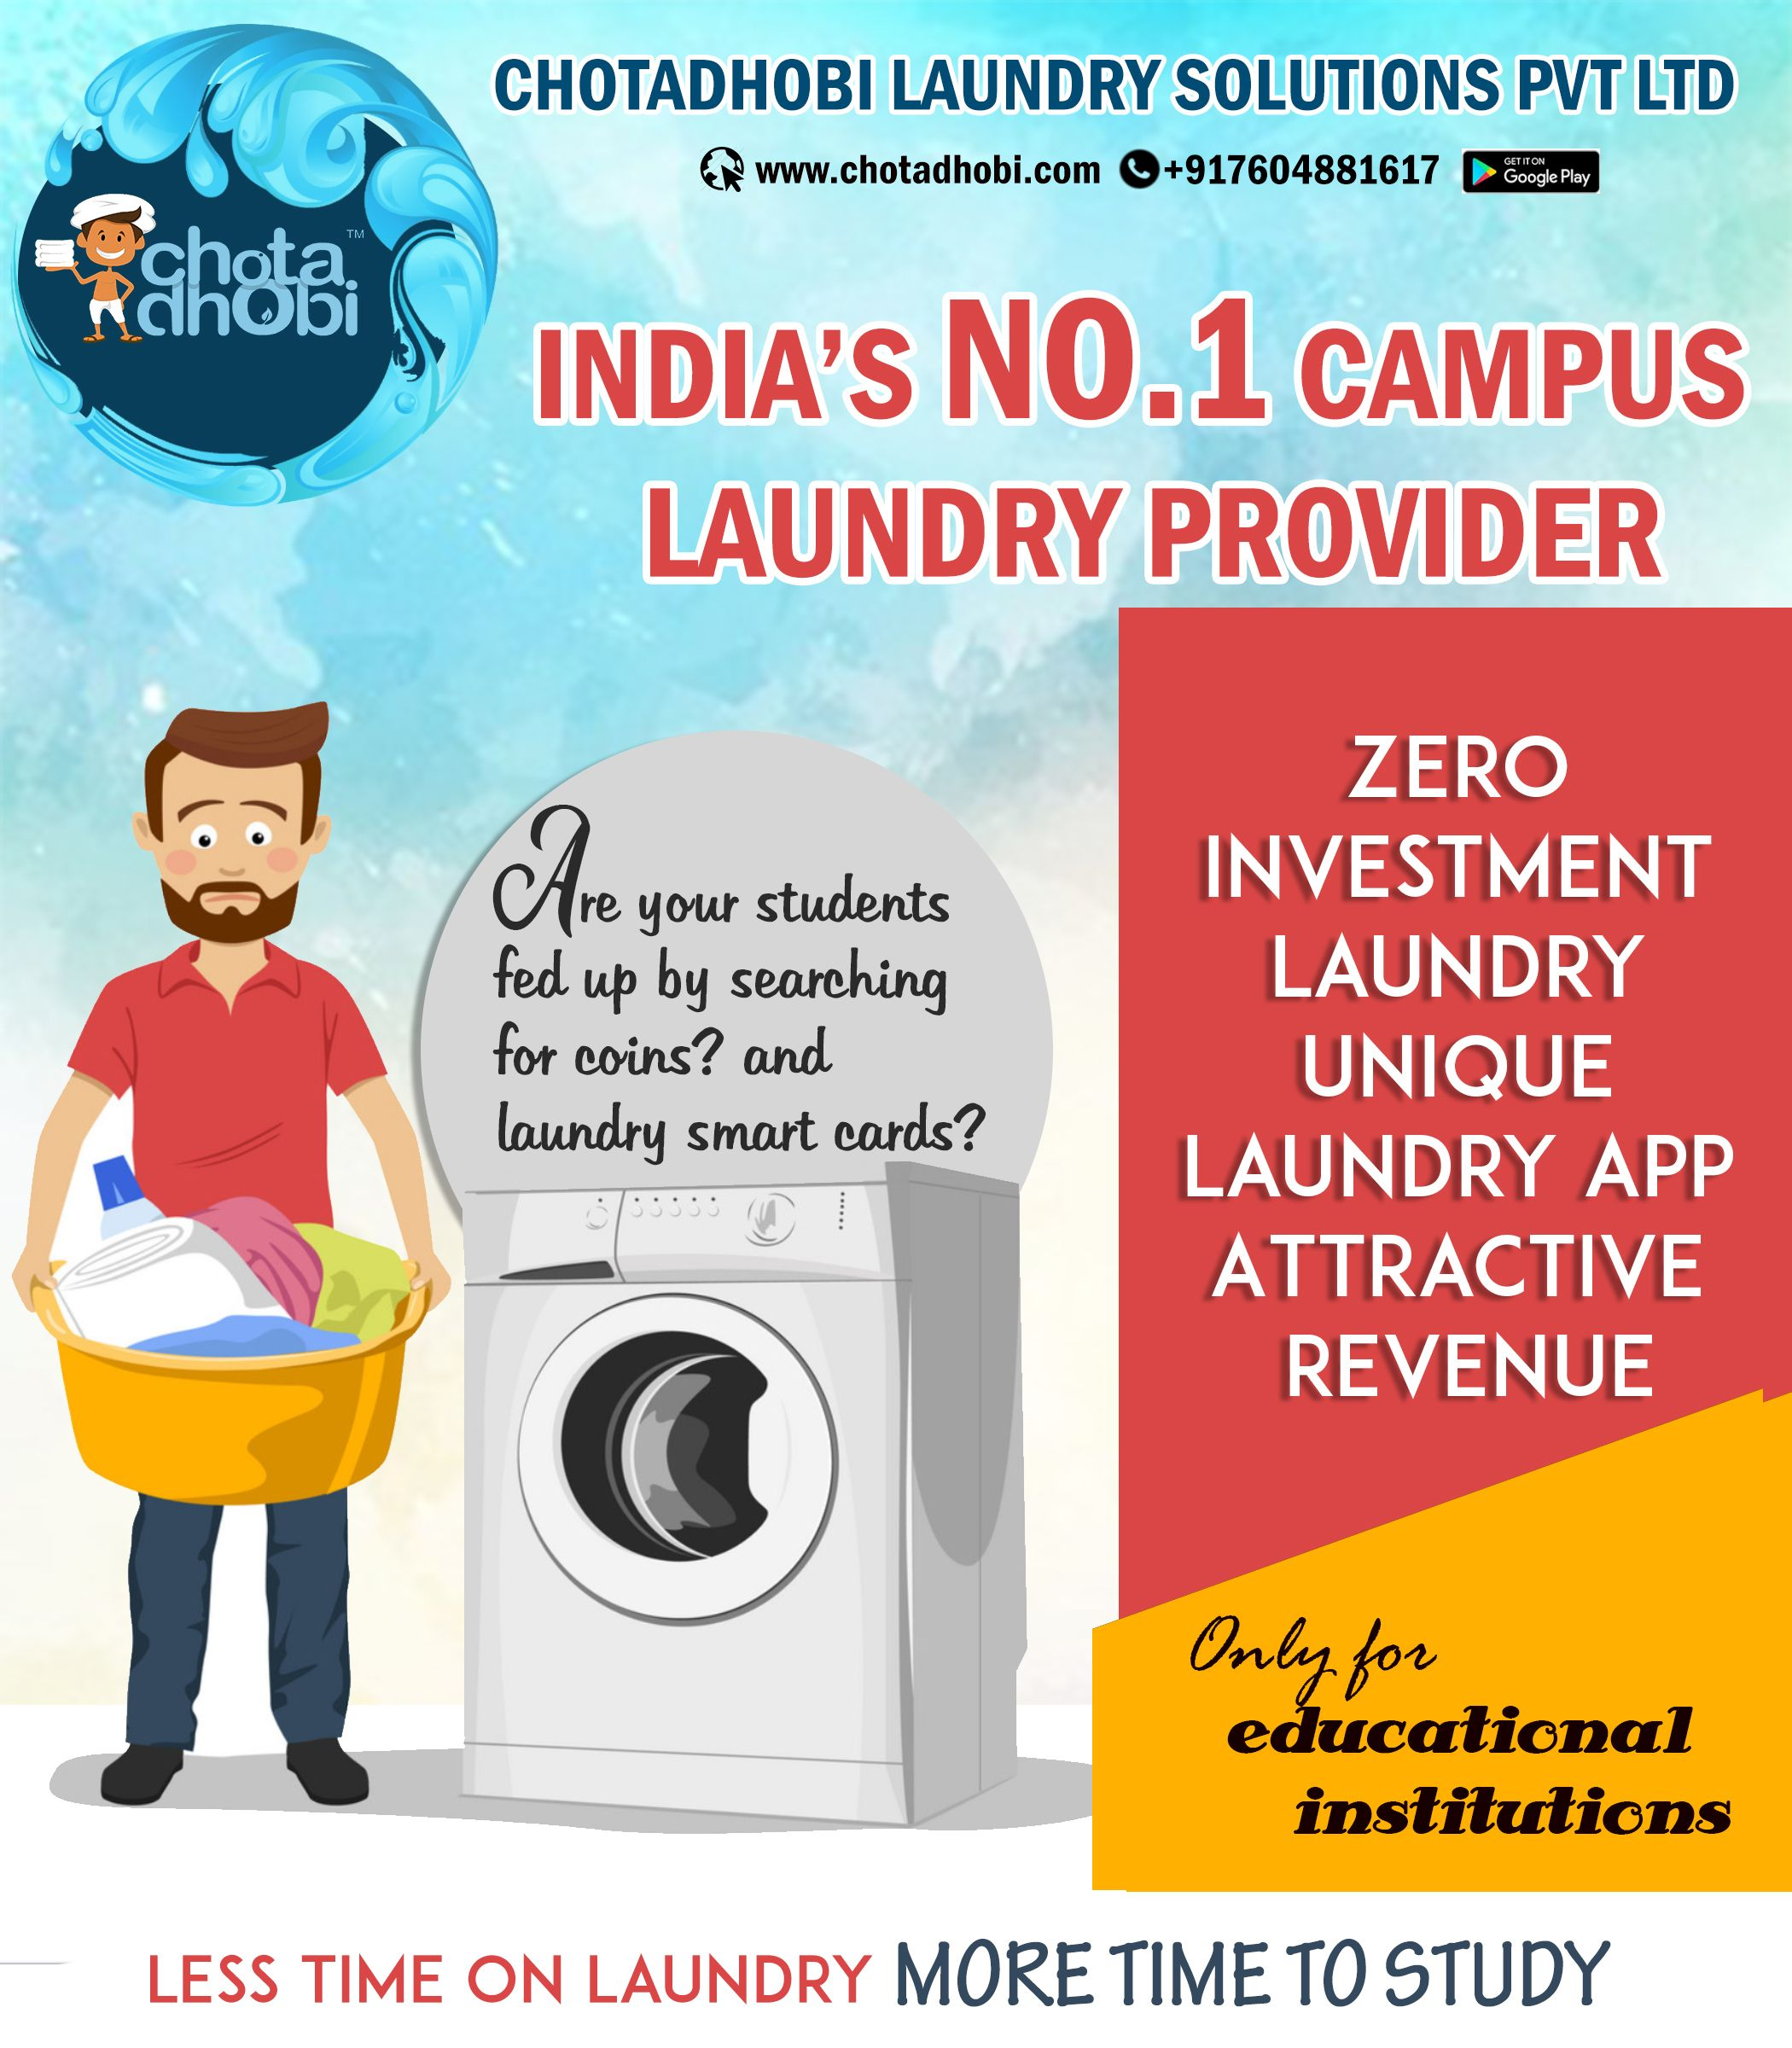 Quality Service Hygienic Washing No Mixing Of Clothes